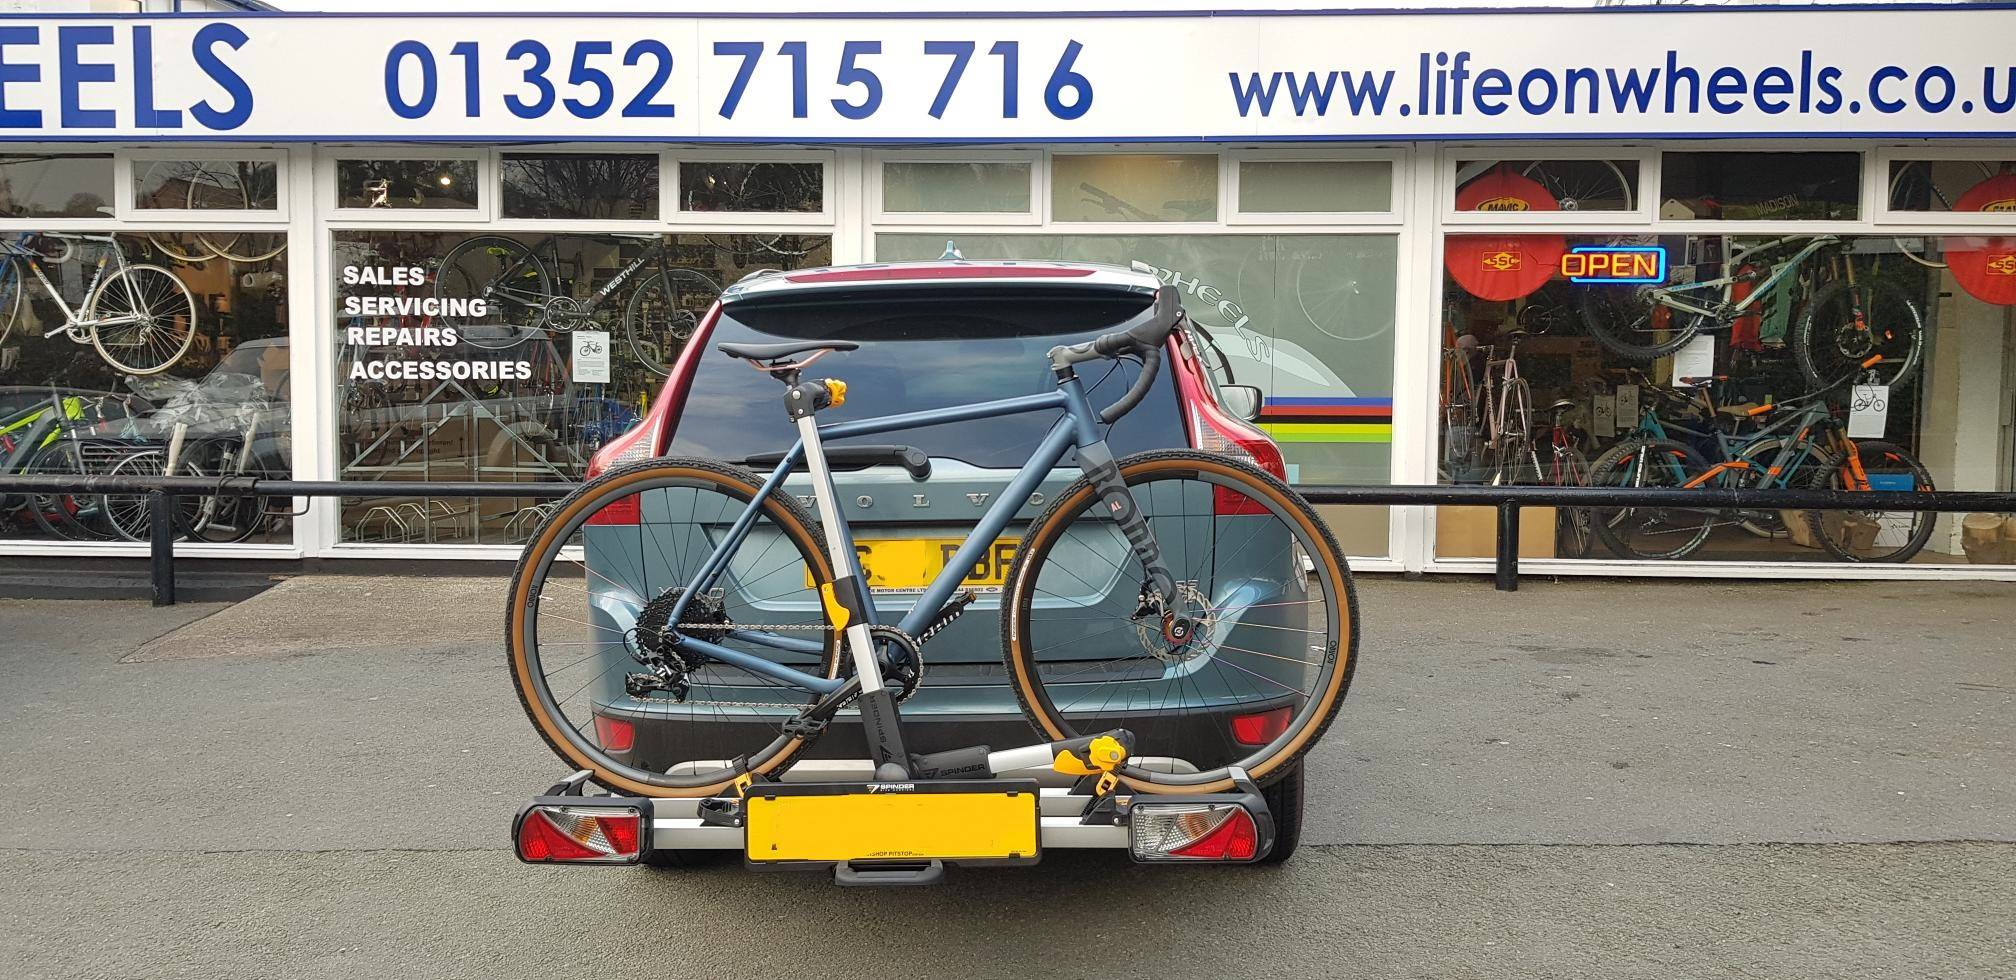 Rondo Gravel Bike and Rack from Life on Wheels, Cycle Shop Holywell, Flintshire